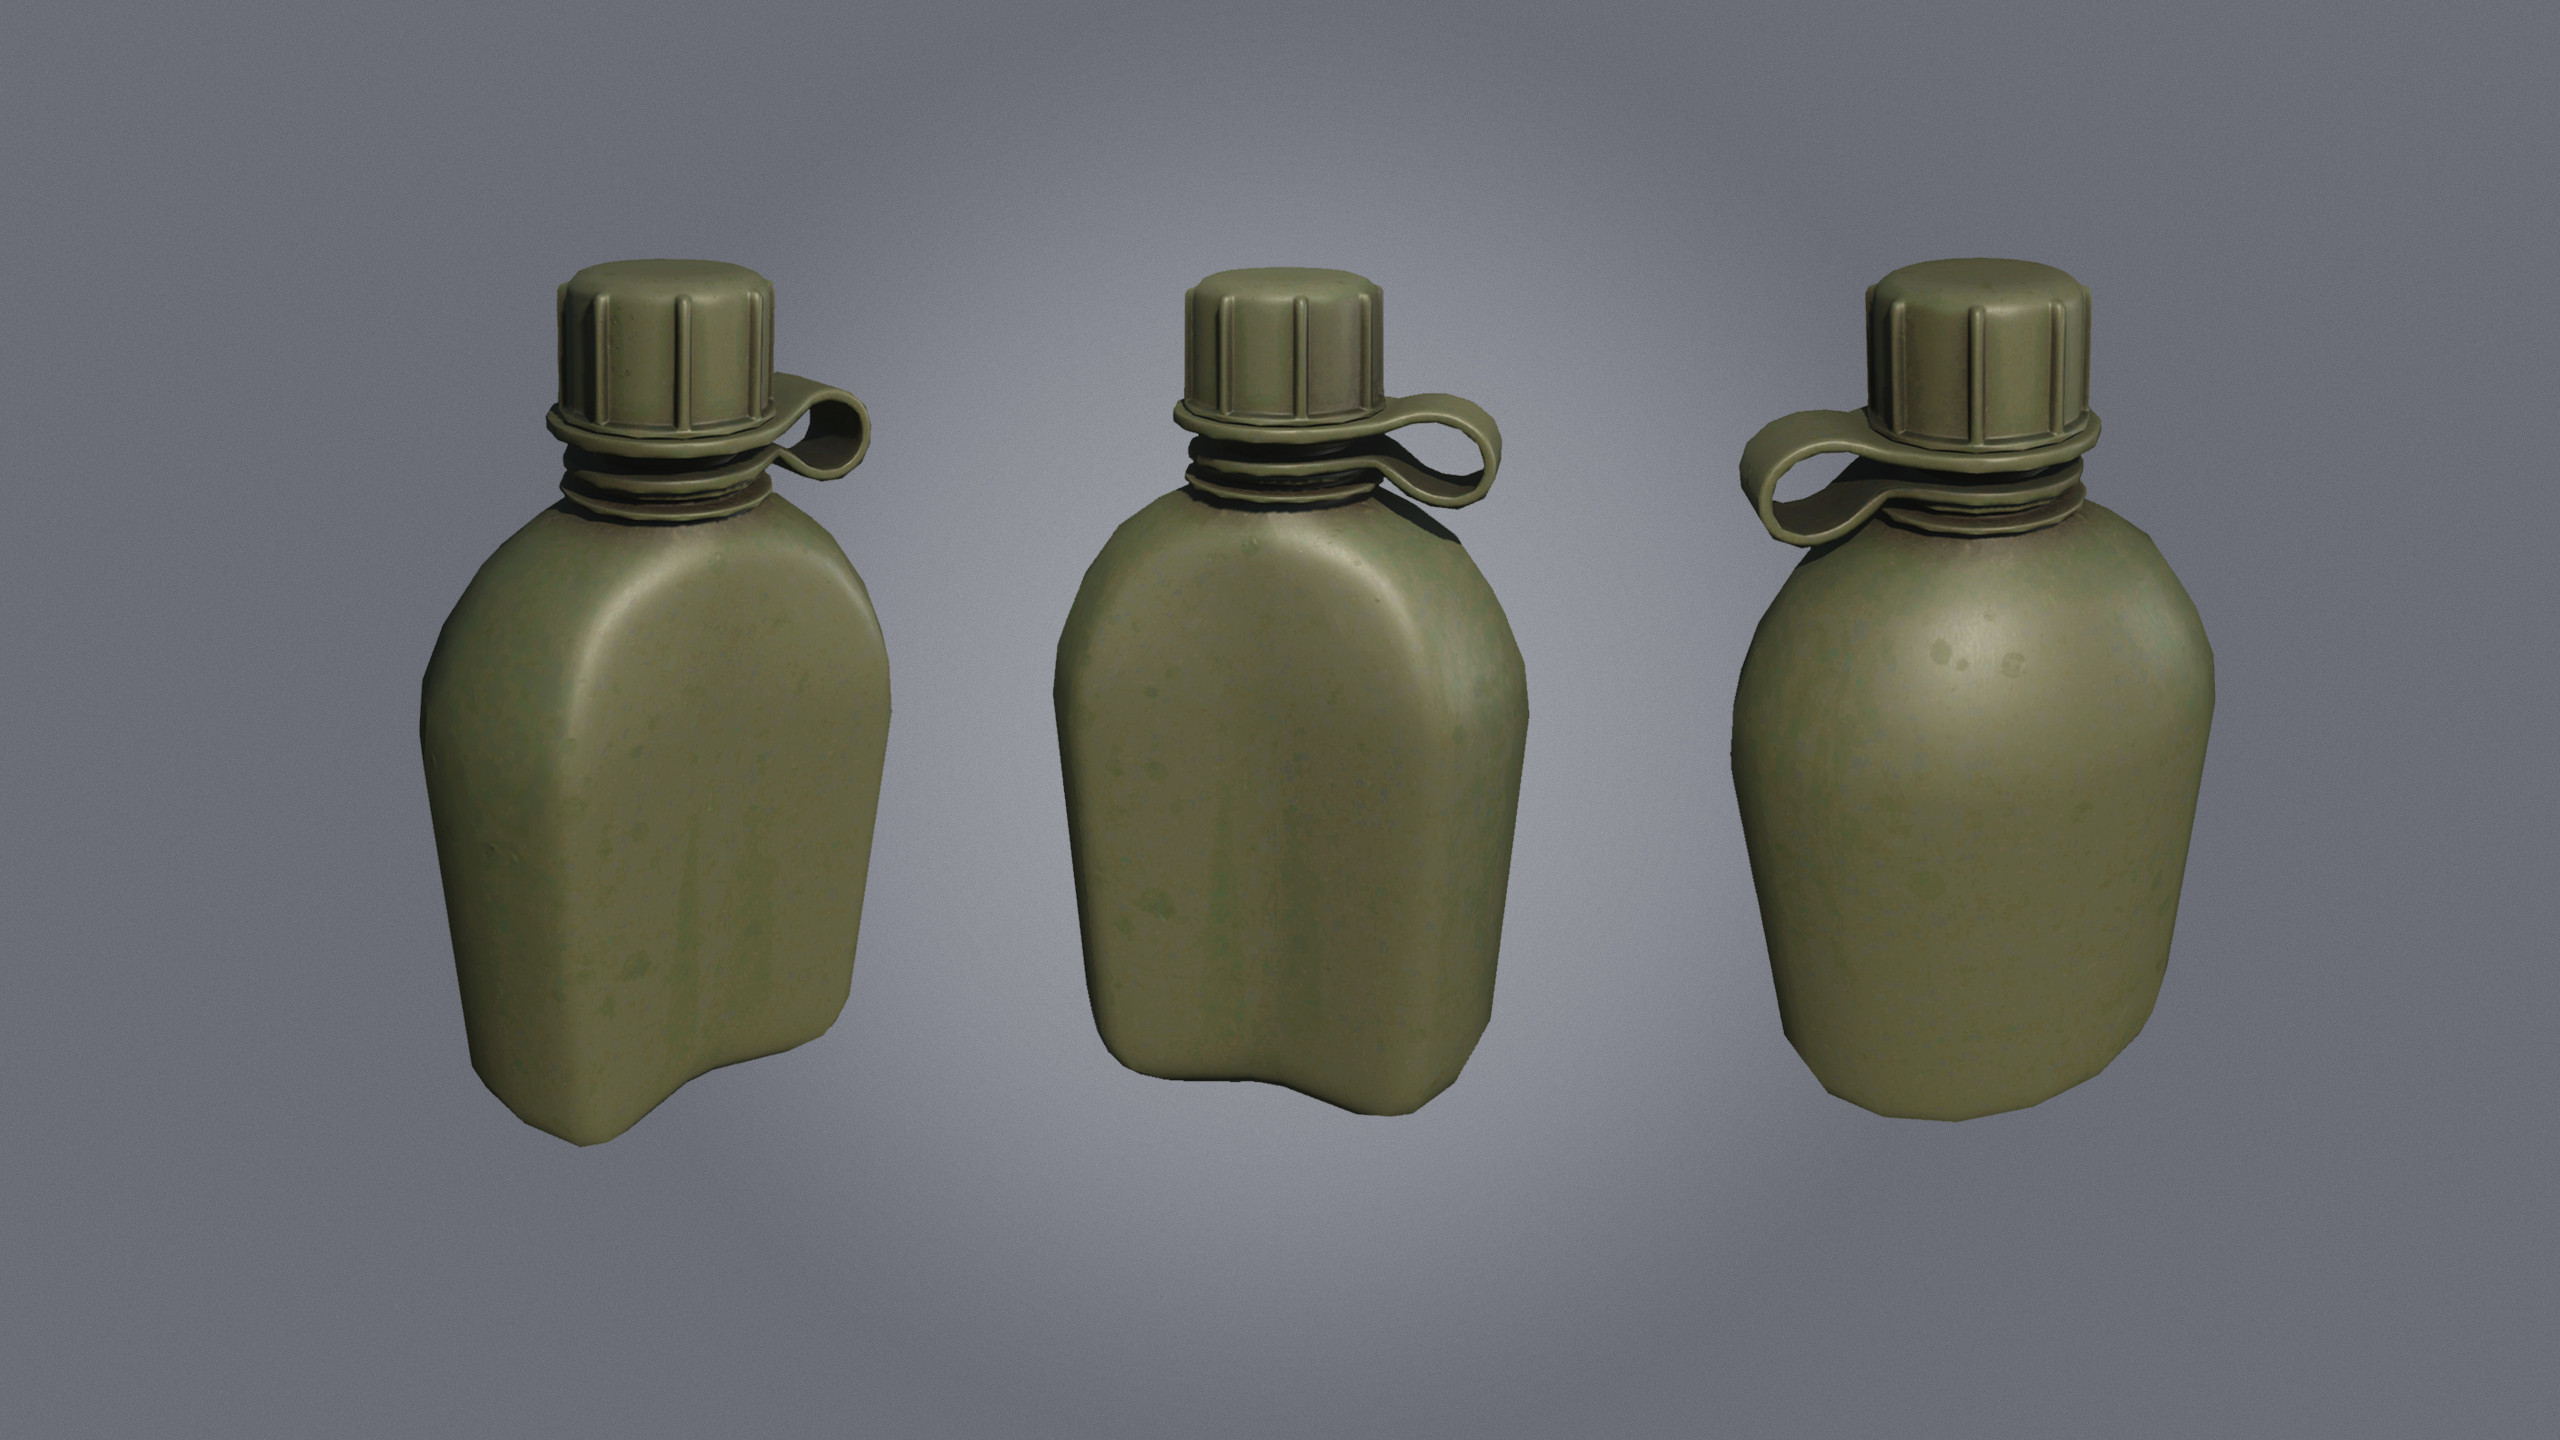 Military Style Canteens, used to hold water.